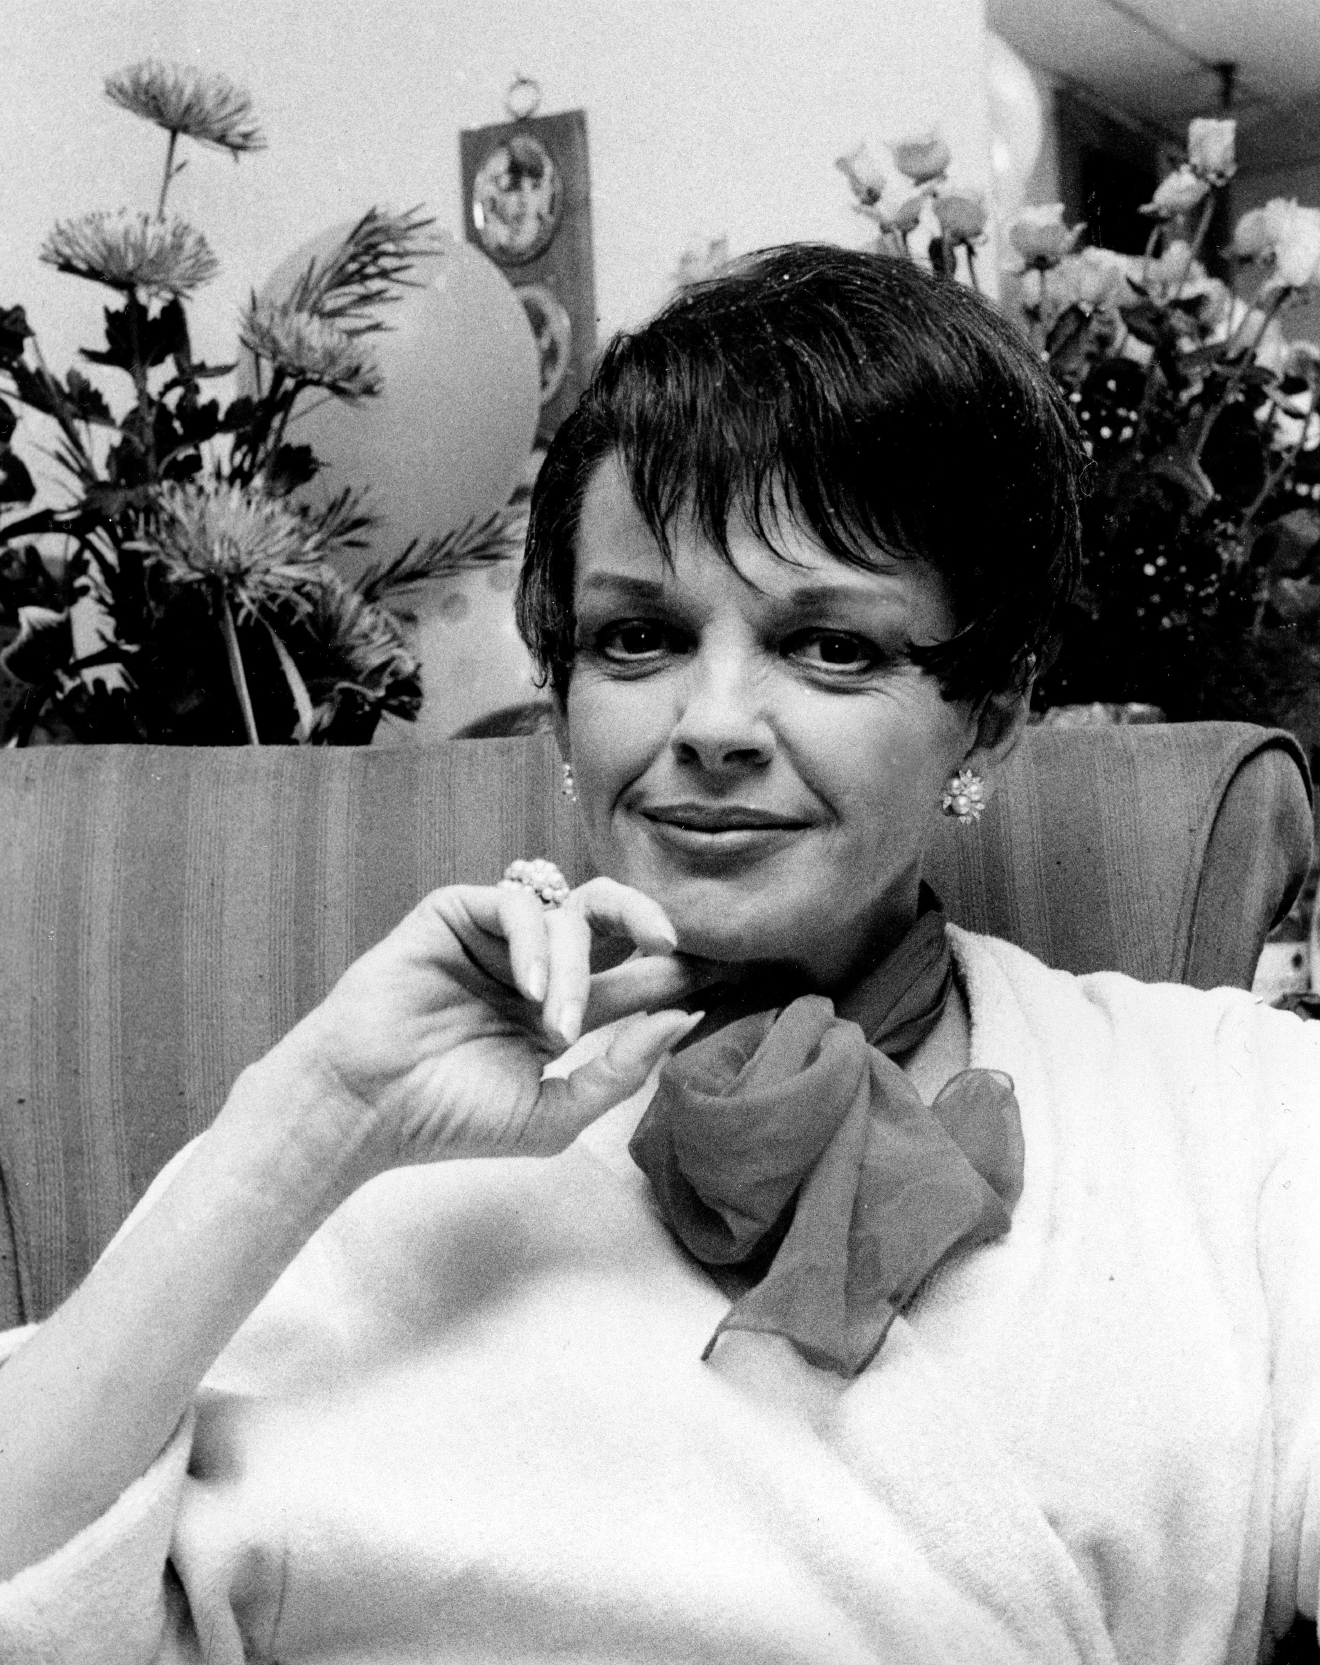 FILE - This July 31, 1967 file photo shows actress-singer Judy Garland backstage at the Palace Theater in New York. (AP Photo, File)